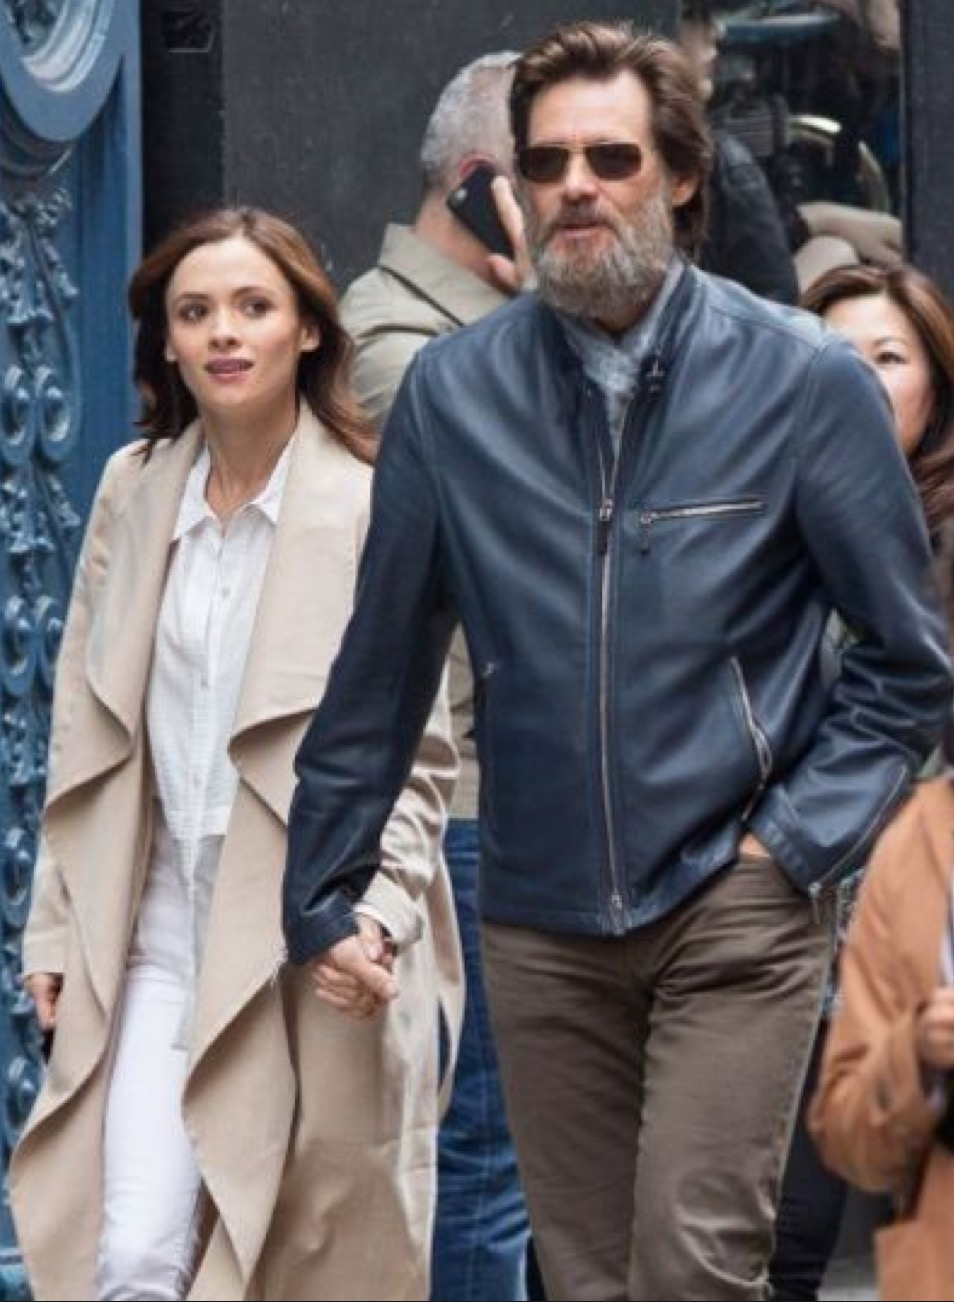 Cathriona White, jim carrey, novia, enfermedad